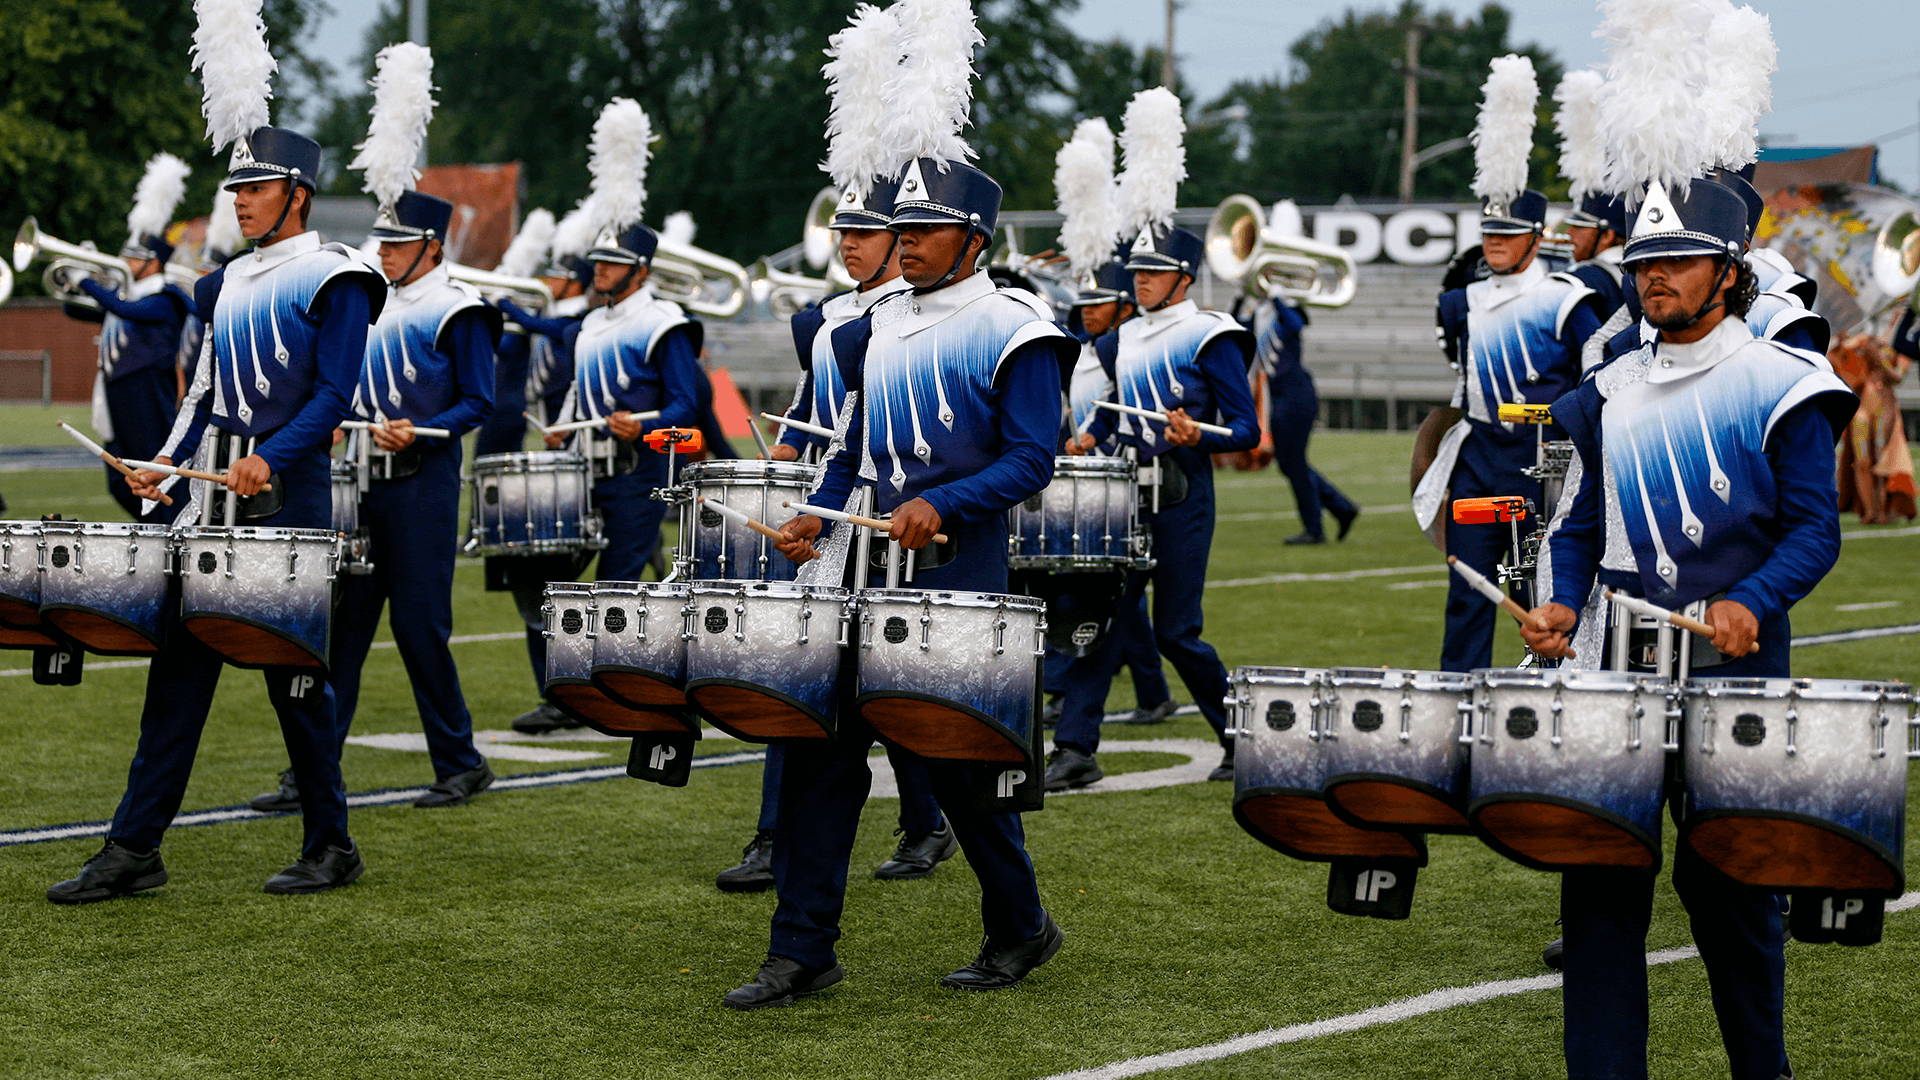 The Thunder of Drums